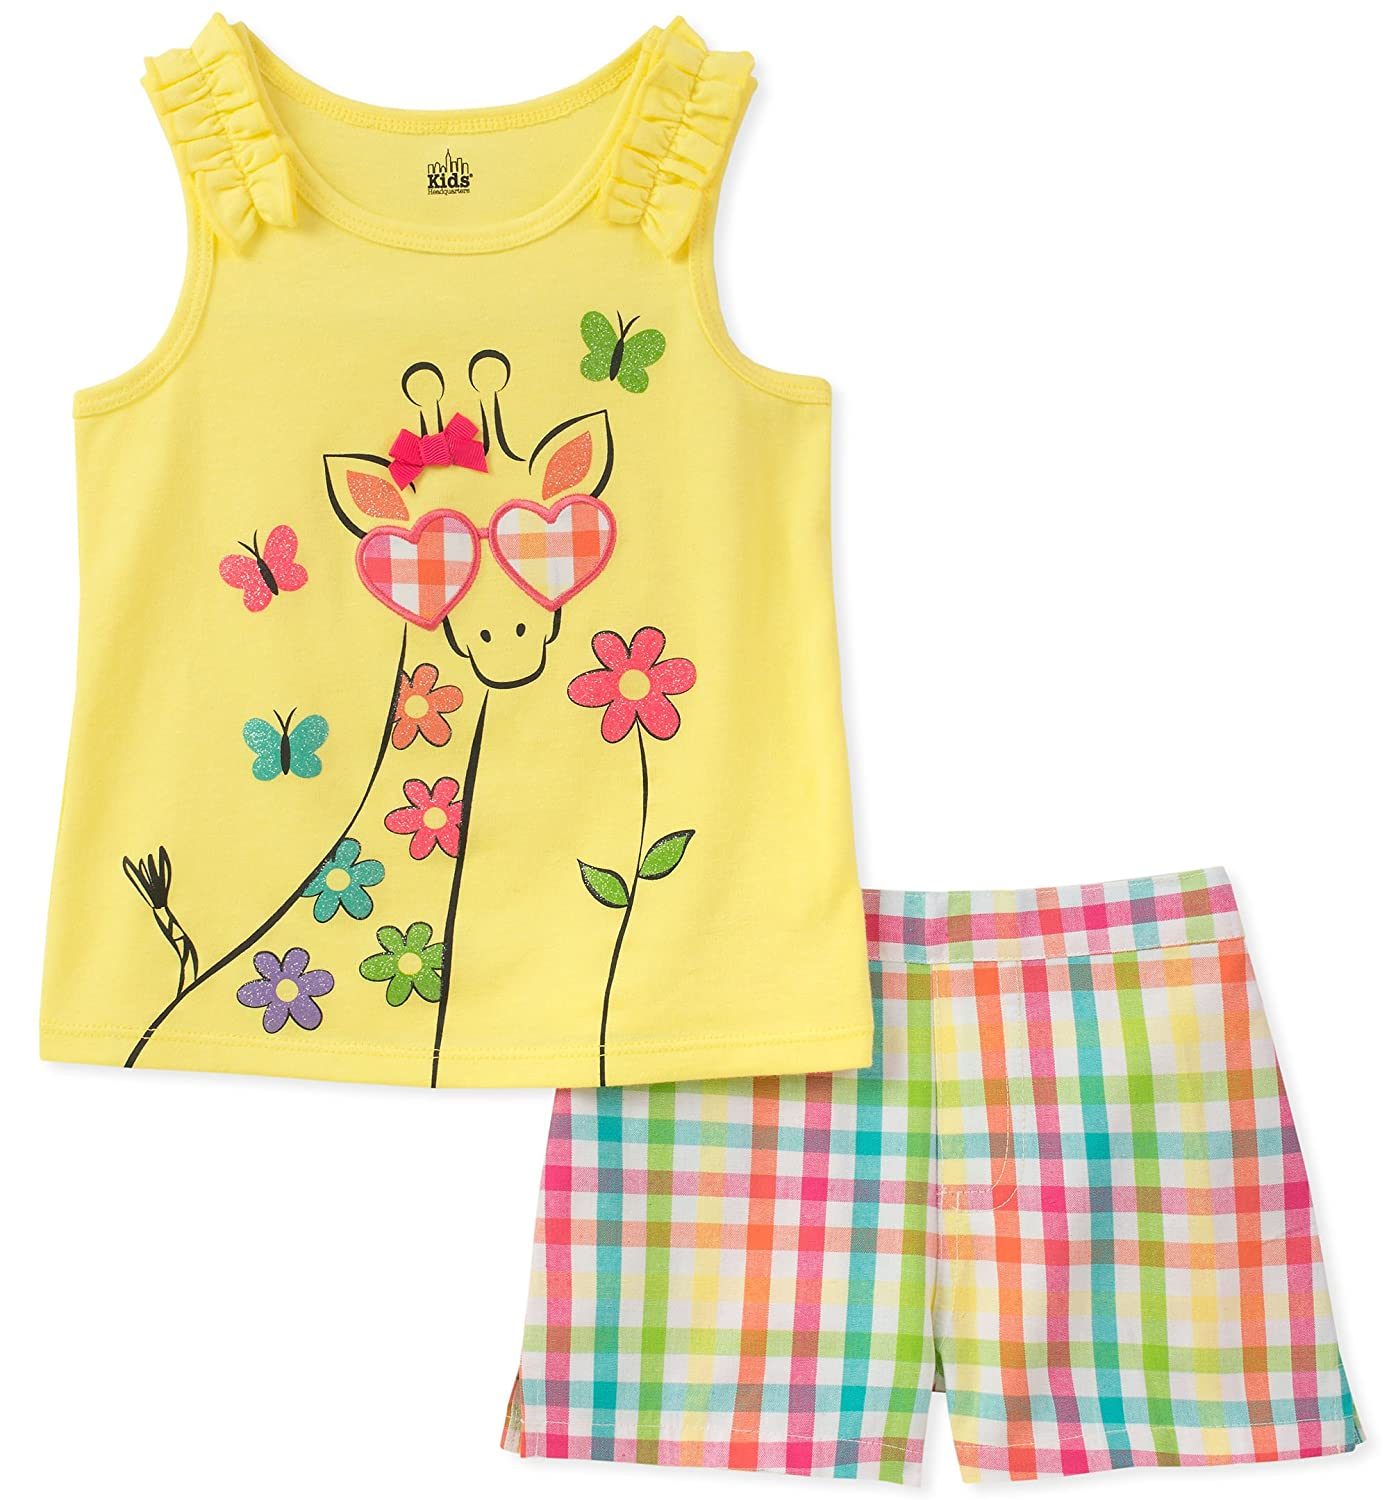 Kids Headquarters Girls' Toddler 2 Pieces Shorts Set 11E12082-99